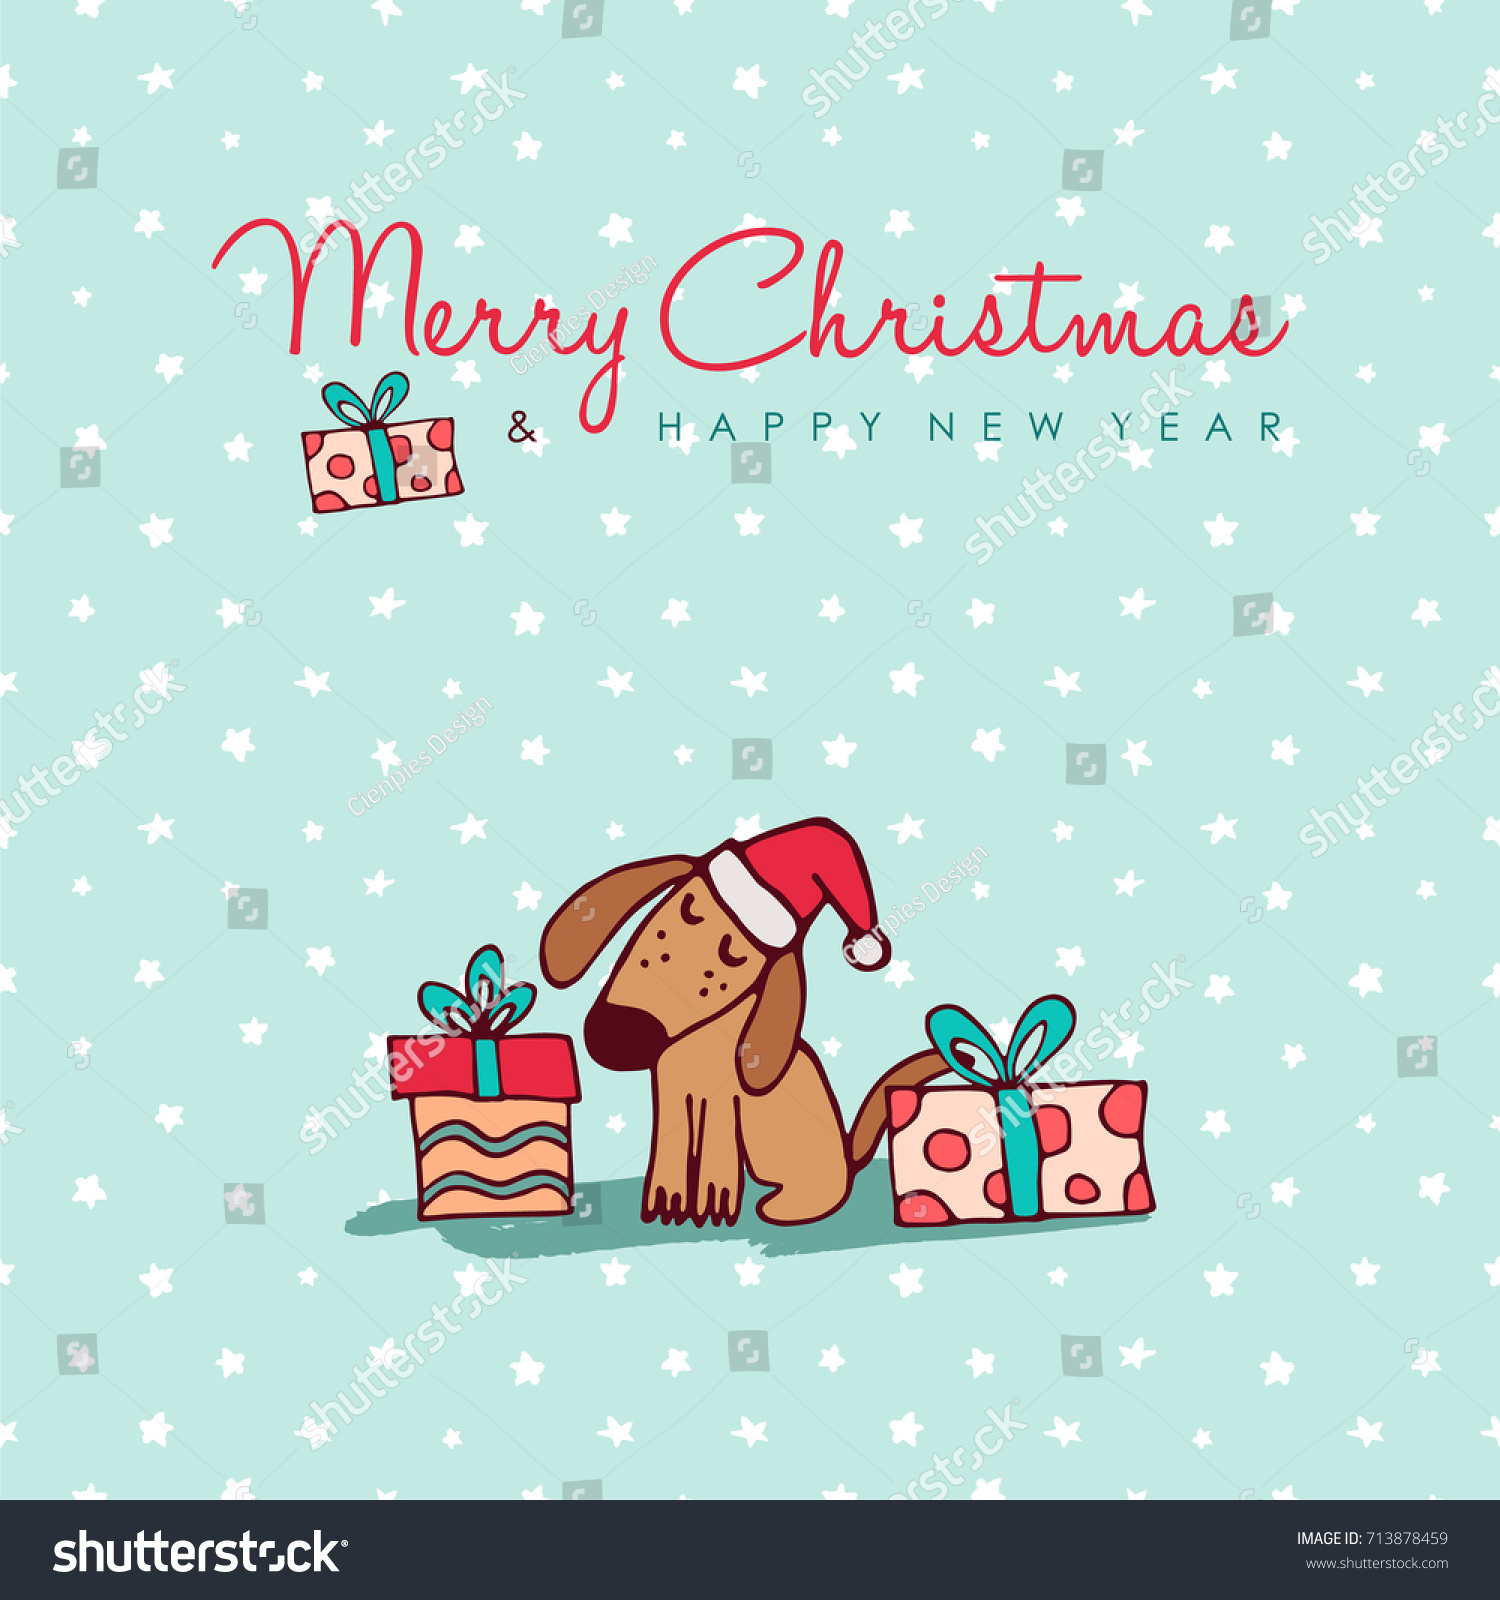 Merry Christmas Happy New Year Hand Drawn Dog Greeting Card Illustration.  Funny Puppy In Santa